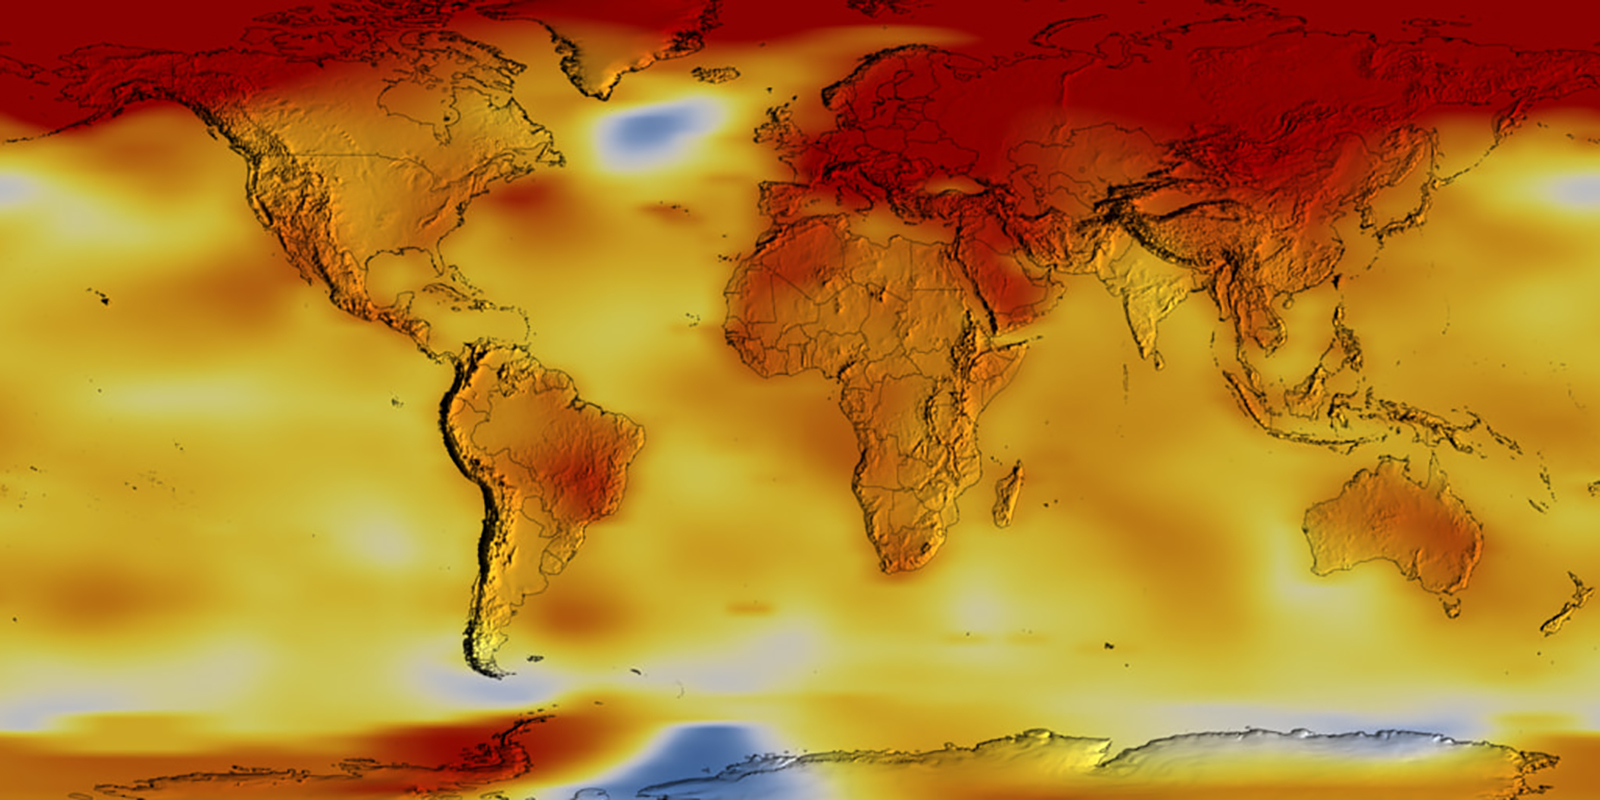 The slowing down of ocean currents could have a devastating effect on our climate